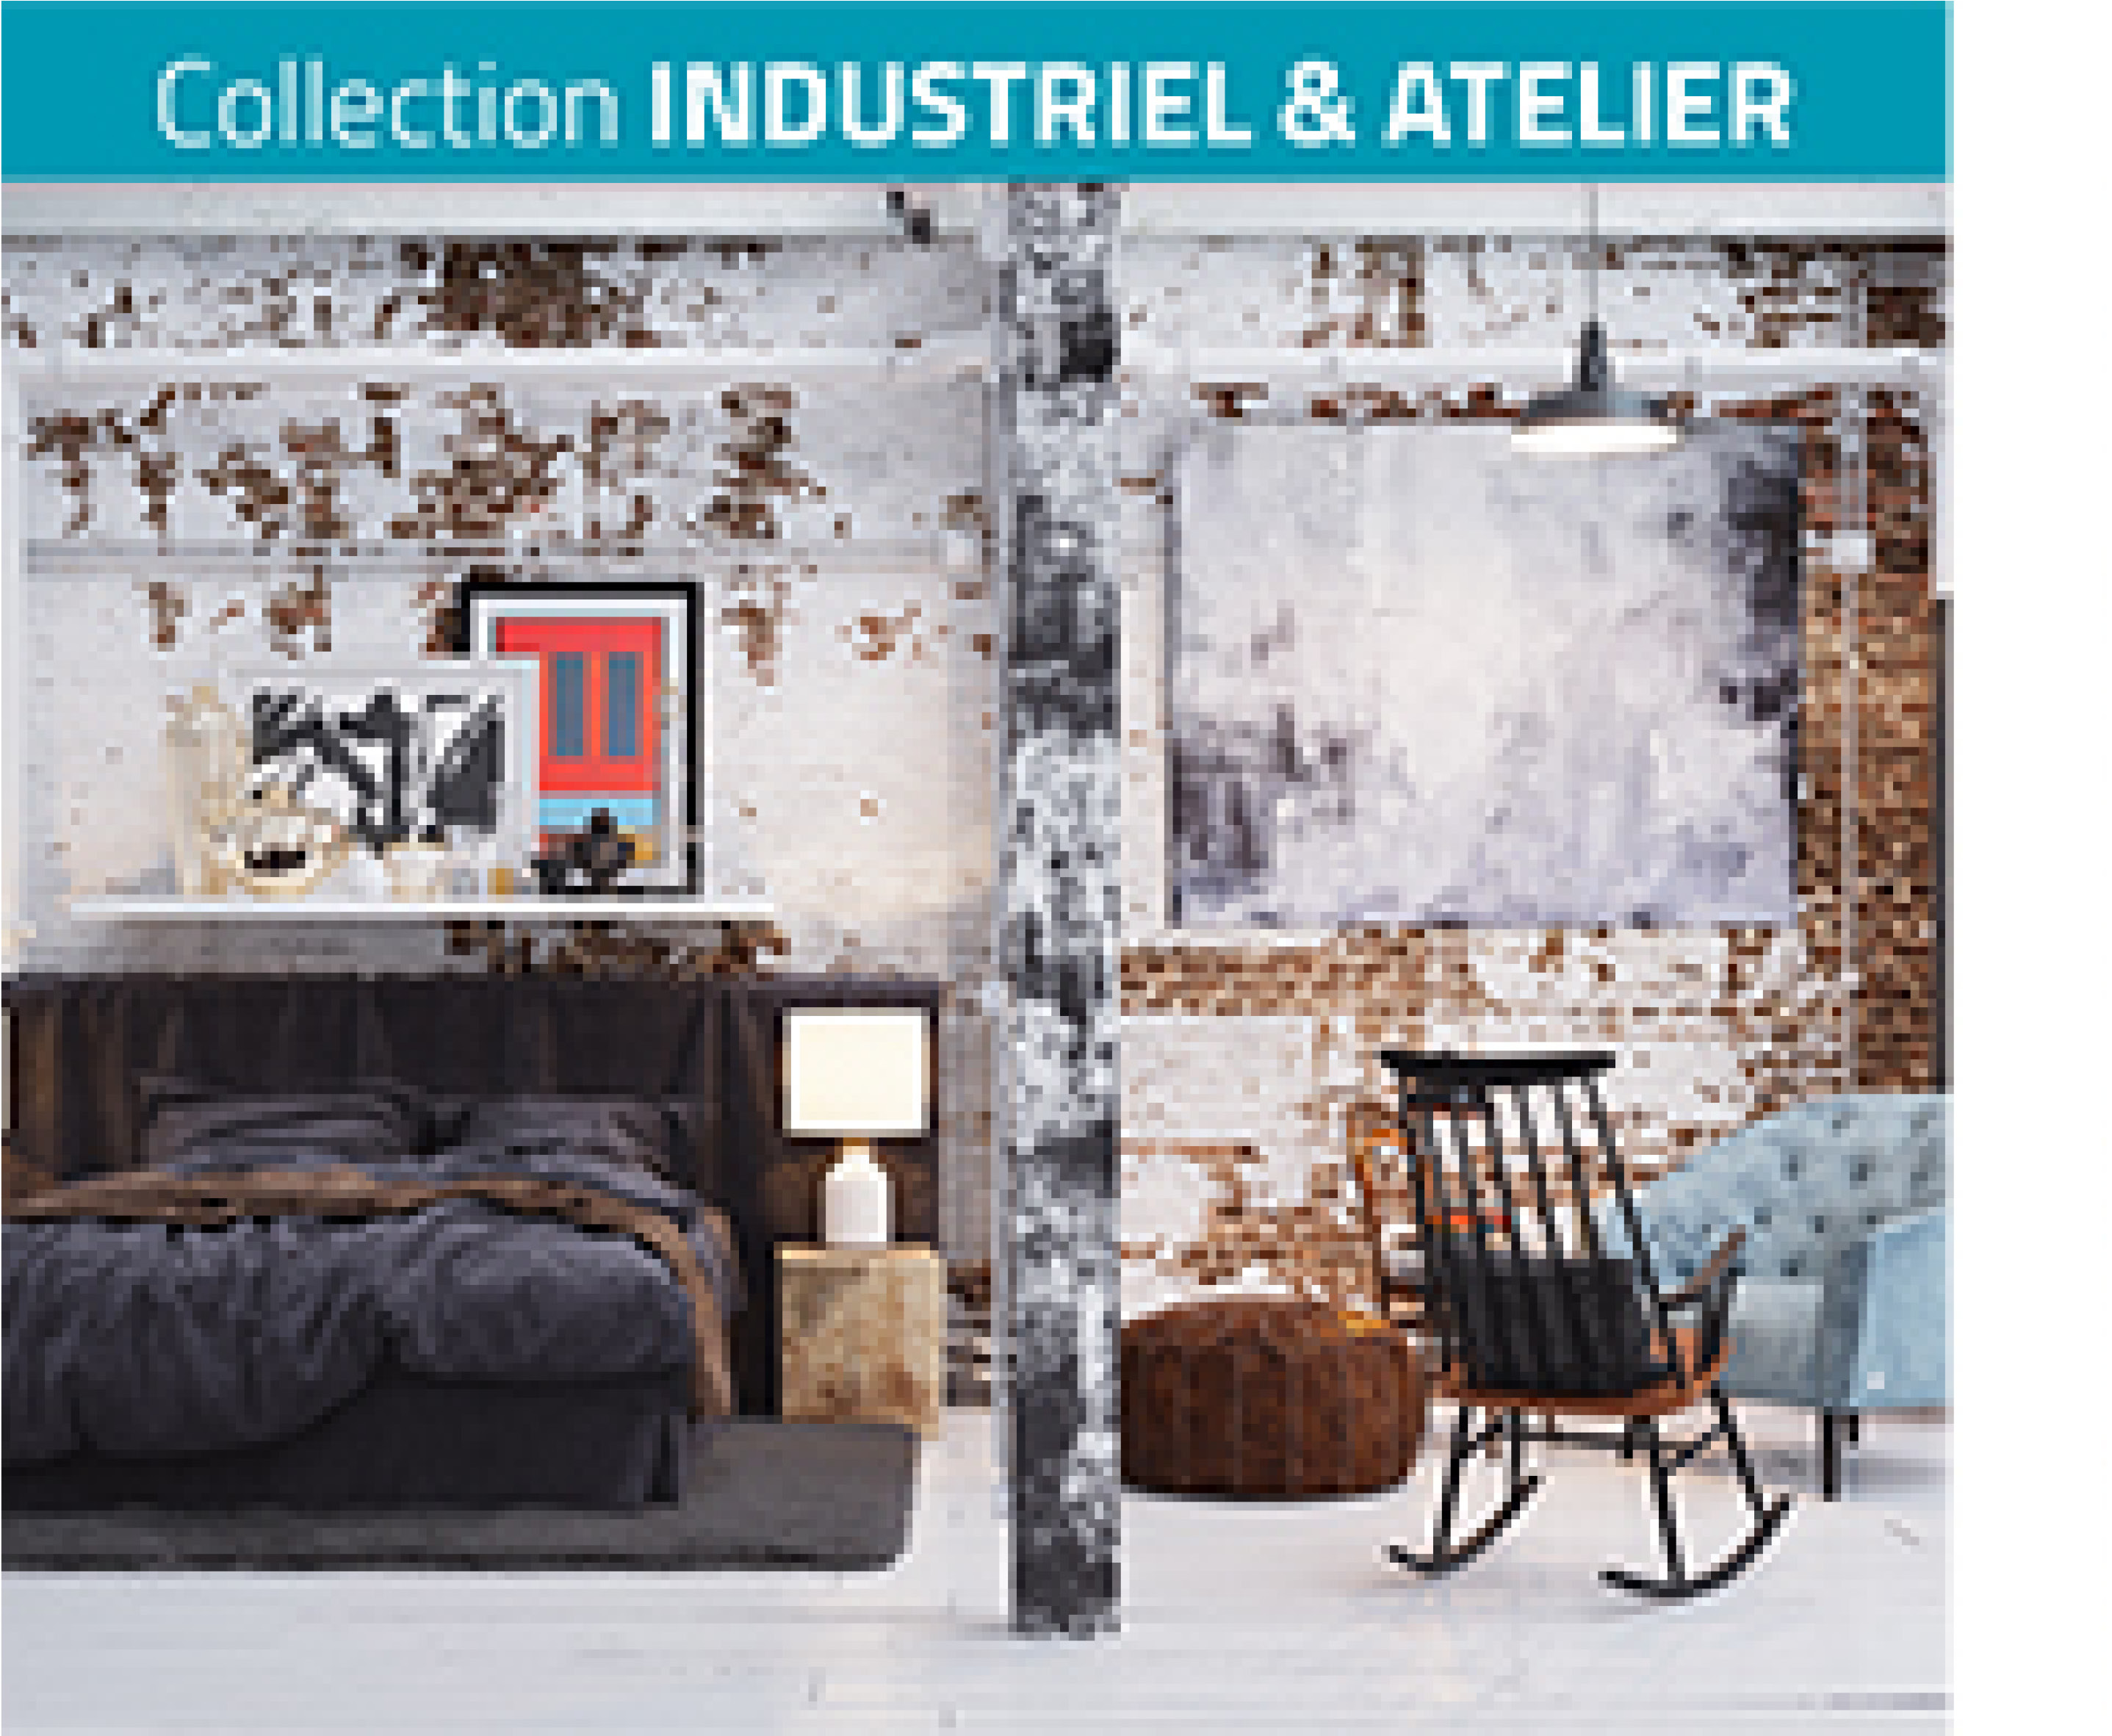 COLLECTION INDUSTRIEL & ATELIER